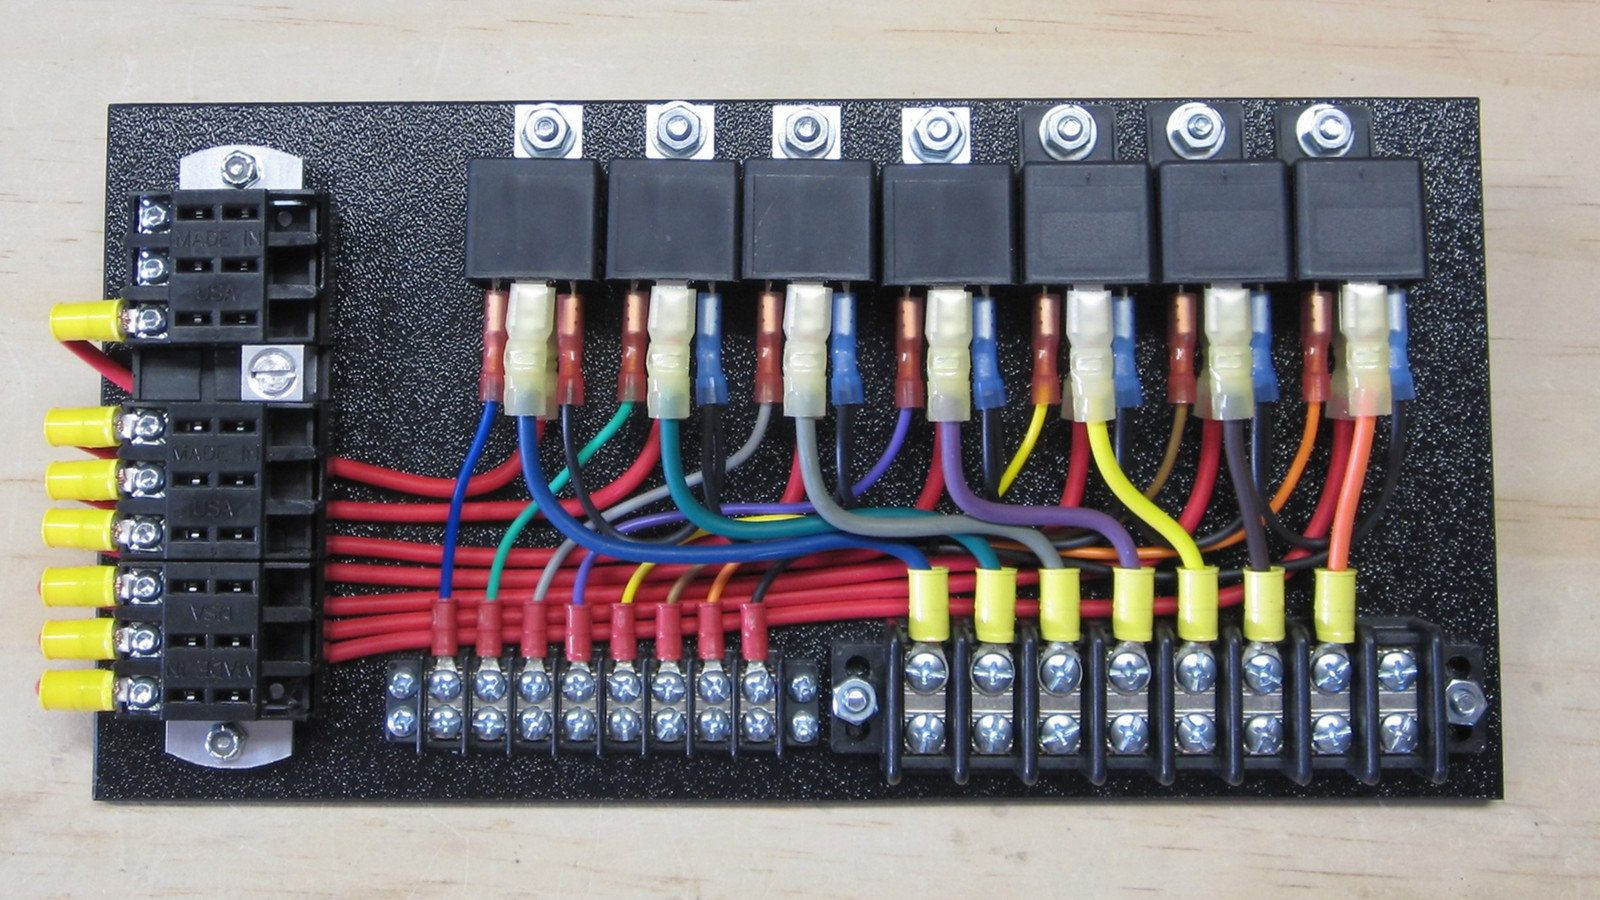 medium resolution of jeep panel wiring wiring diagram operations jeep wrangler instrument panel wiring 7 relay panel w switched